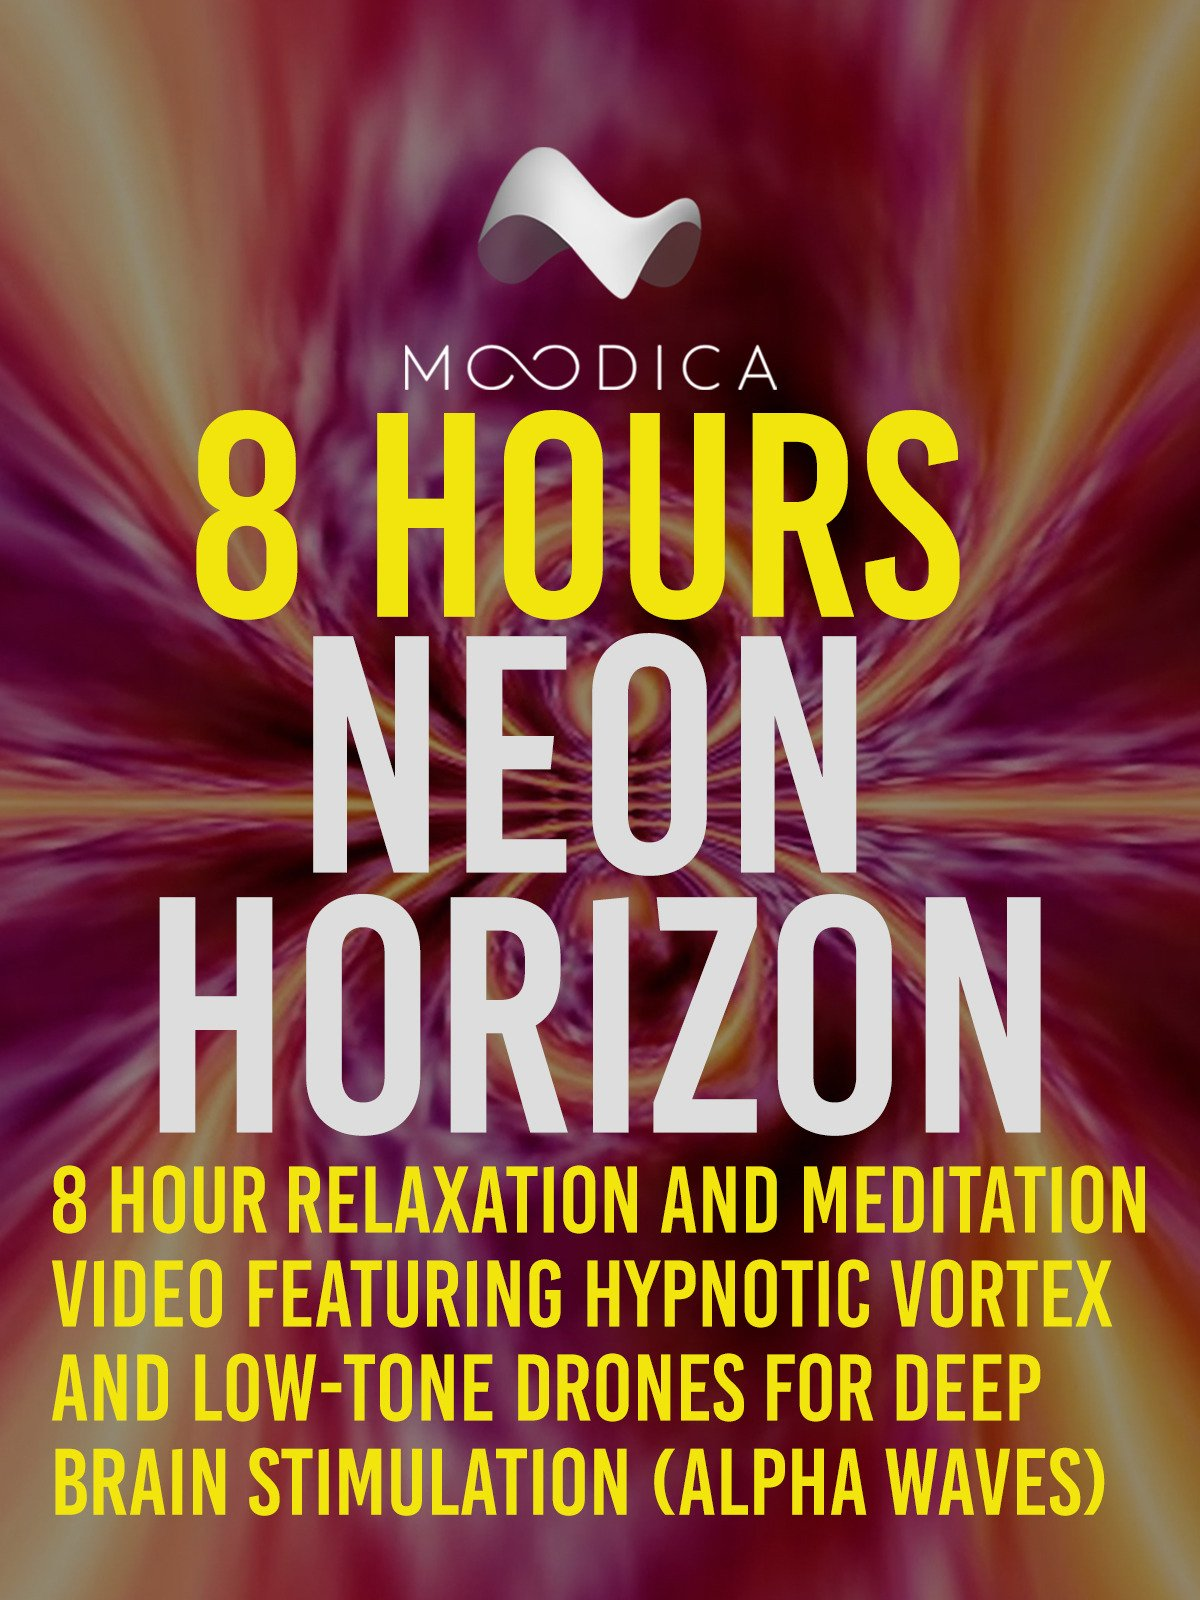 8 Hours: Neon Horizon: 8 Hour Relaxation and Meditation Video Featuring Hypnotic Vortex and Low-Tone Drones For Deep Brain Stimulation (Alpha Waves)